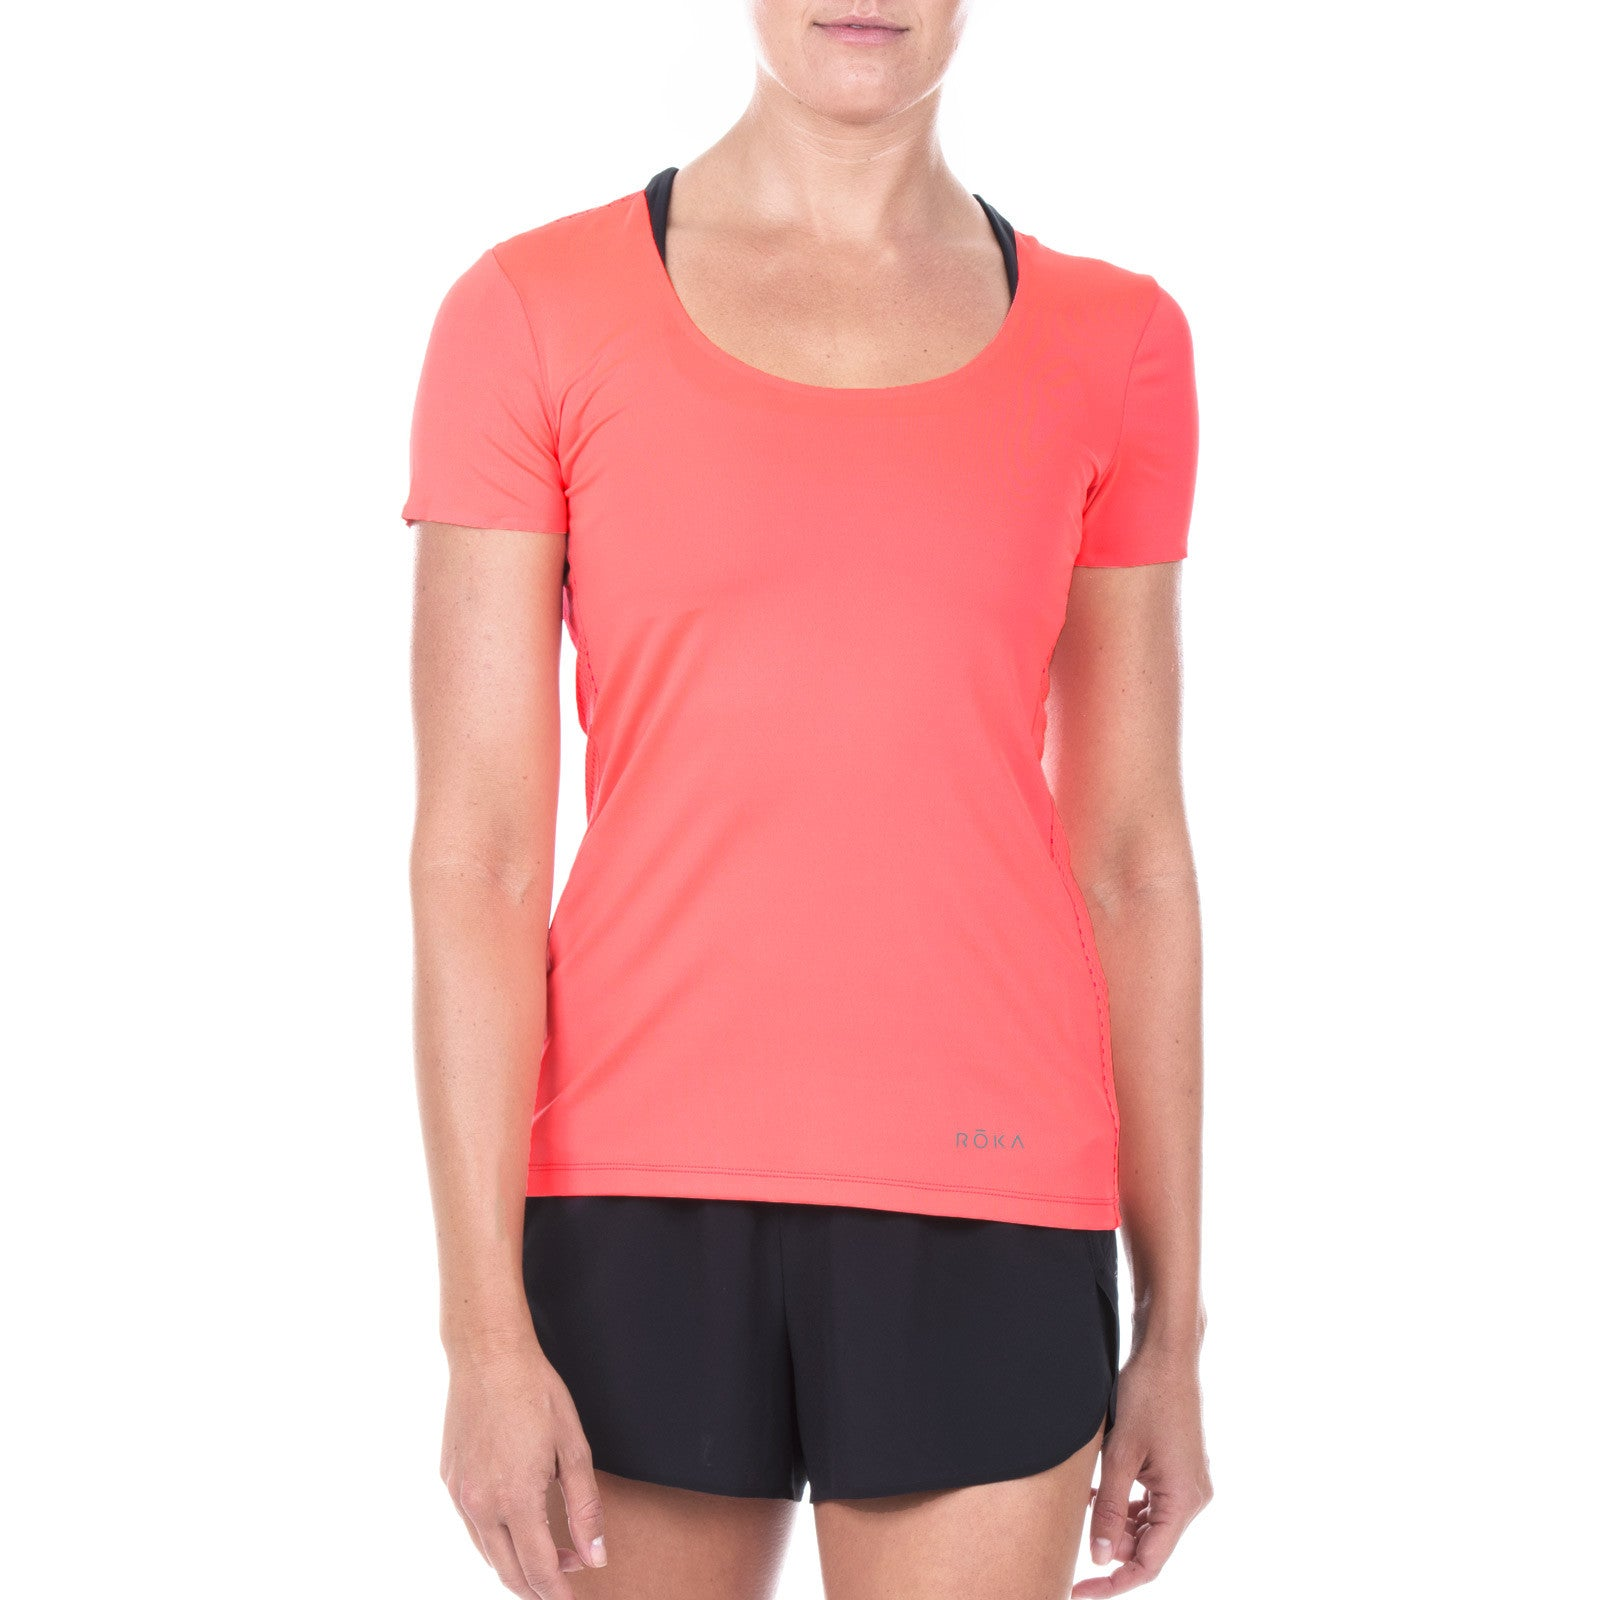 torch women Nike air max torch 4 running shoe go as fast as you can when you wear the air max torch 4 running shoes from nike this style features breathable mesh and a padded tongue and collar for comfort and support while you're running lapsavailabl.